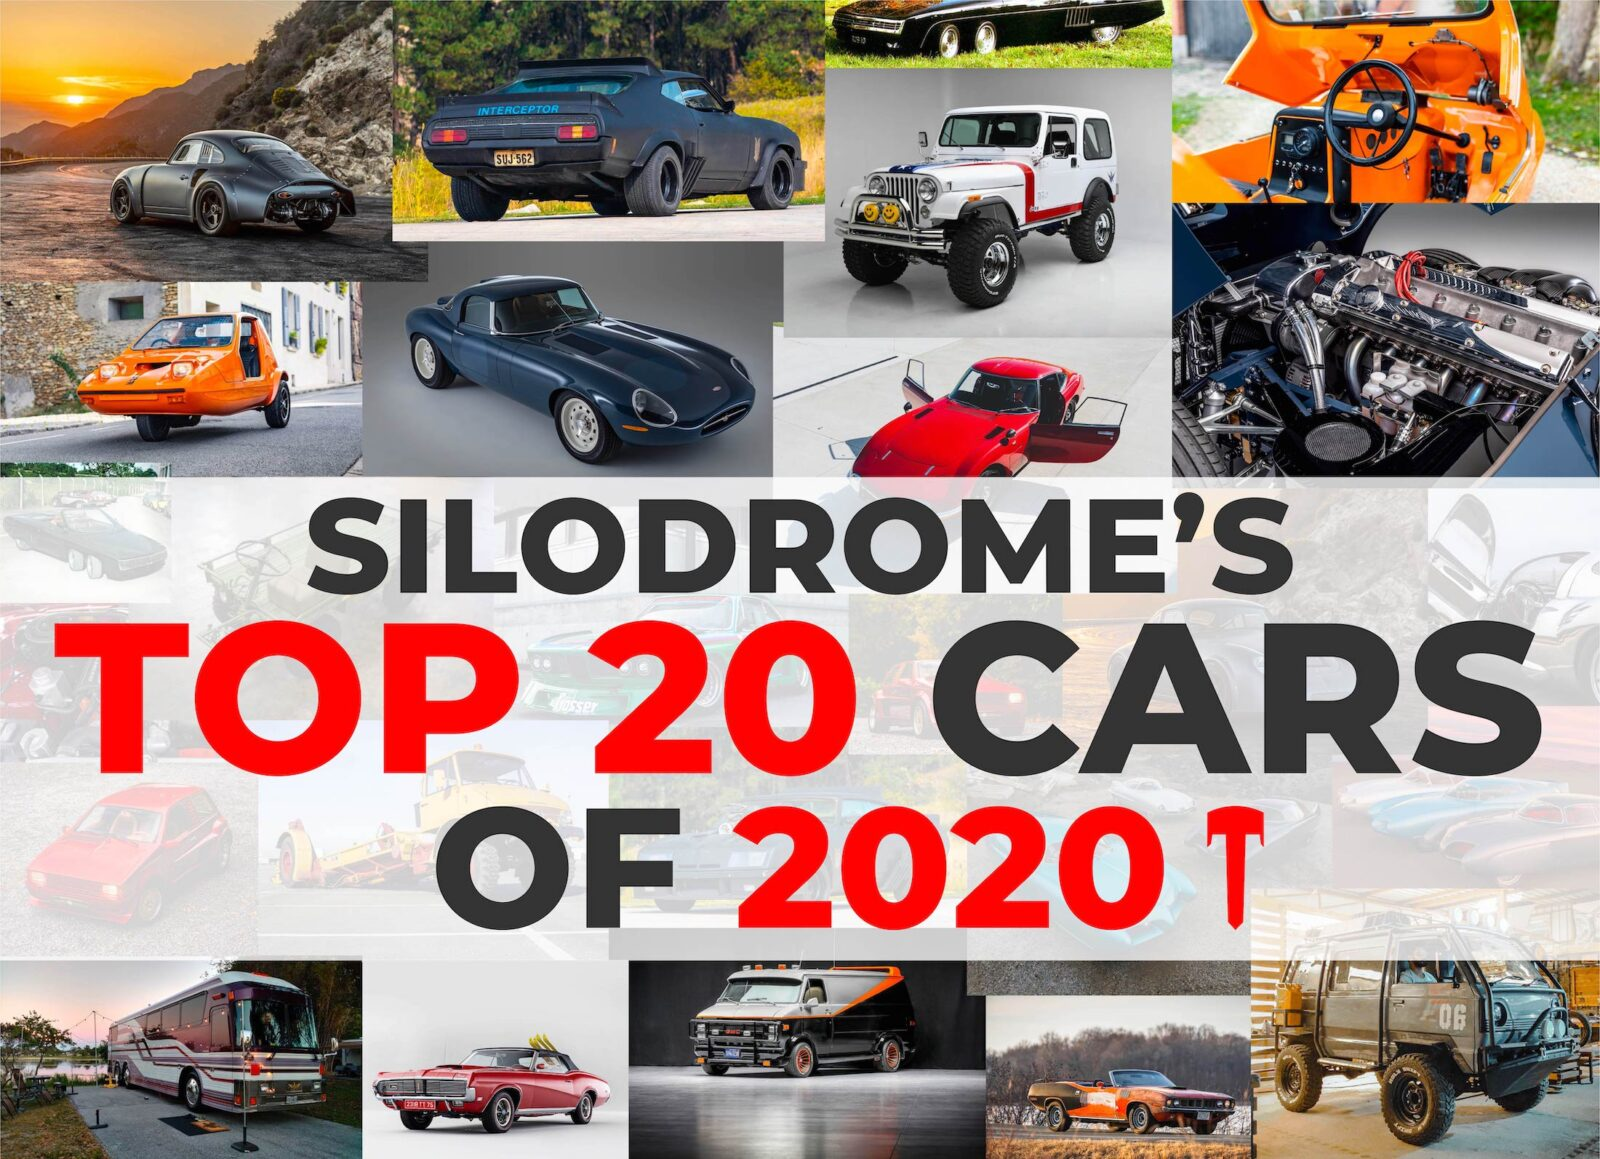 Silodrome Top 20 Cars Of 2020 Thumbnail